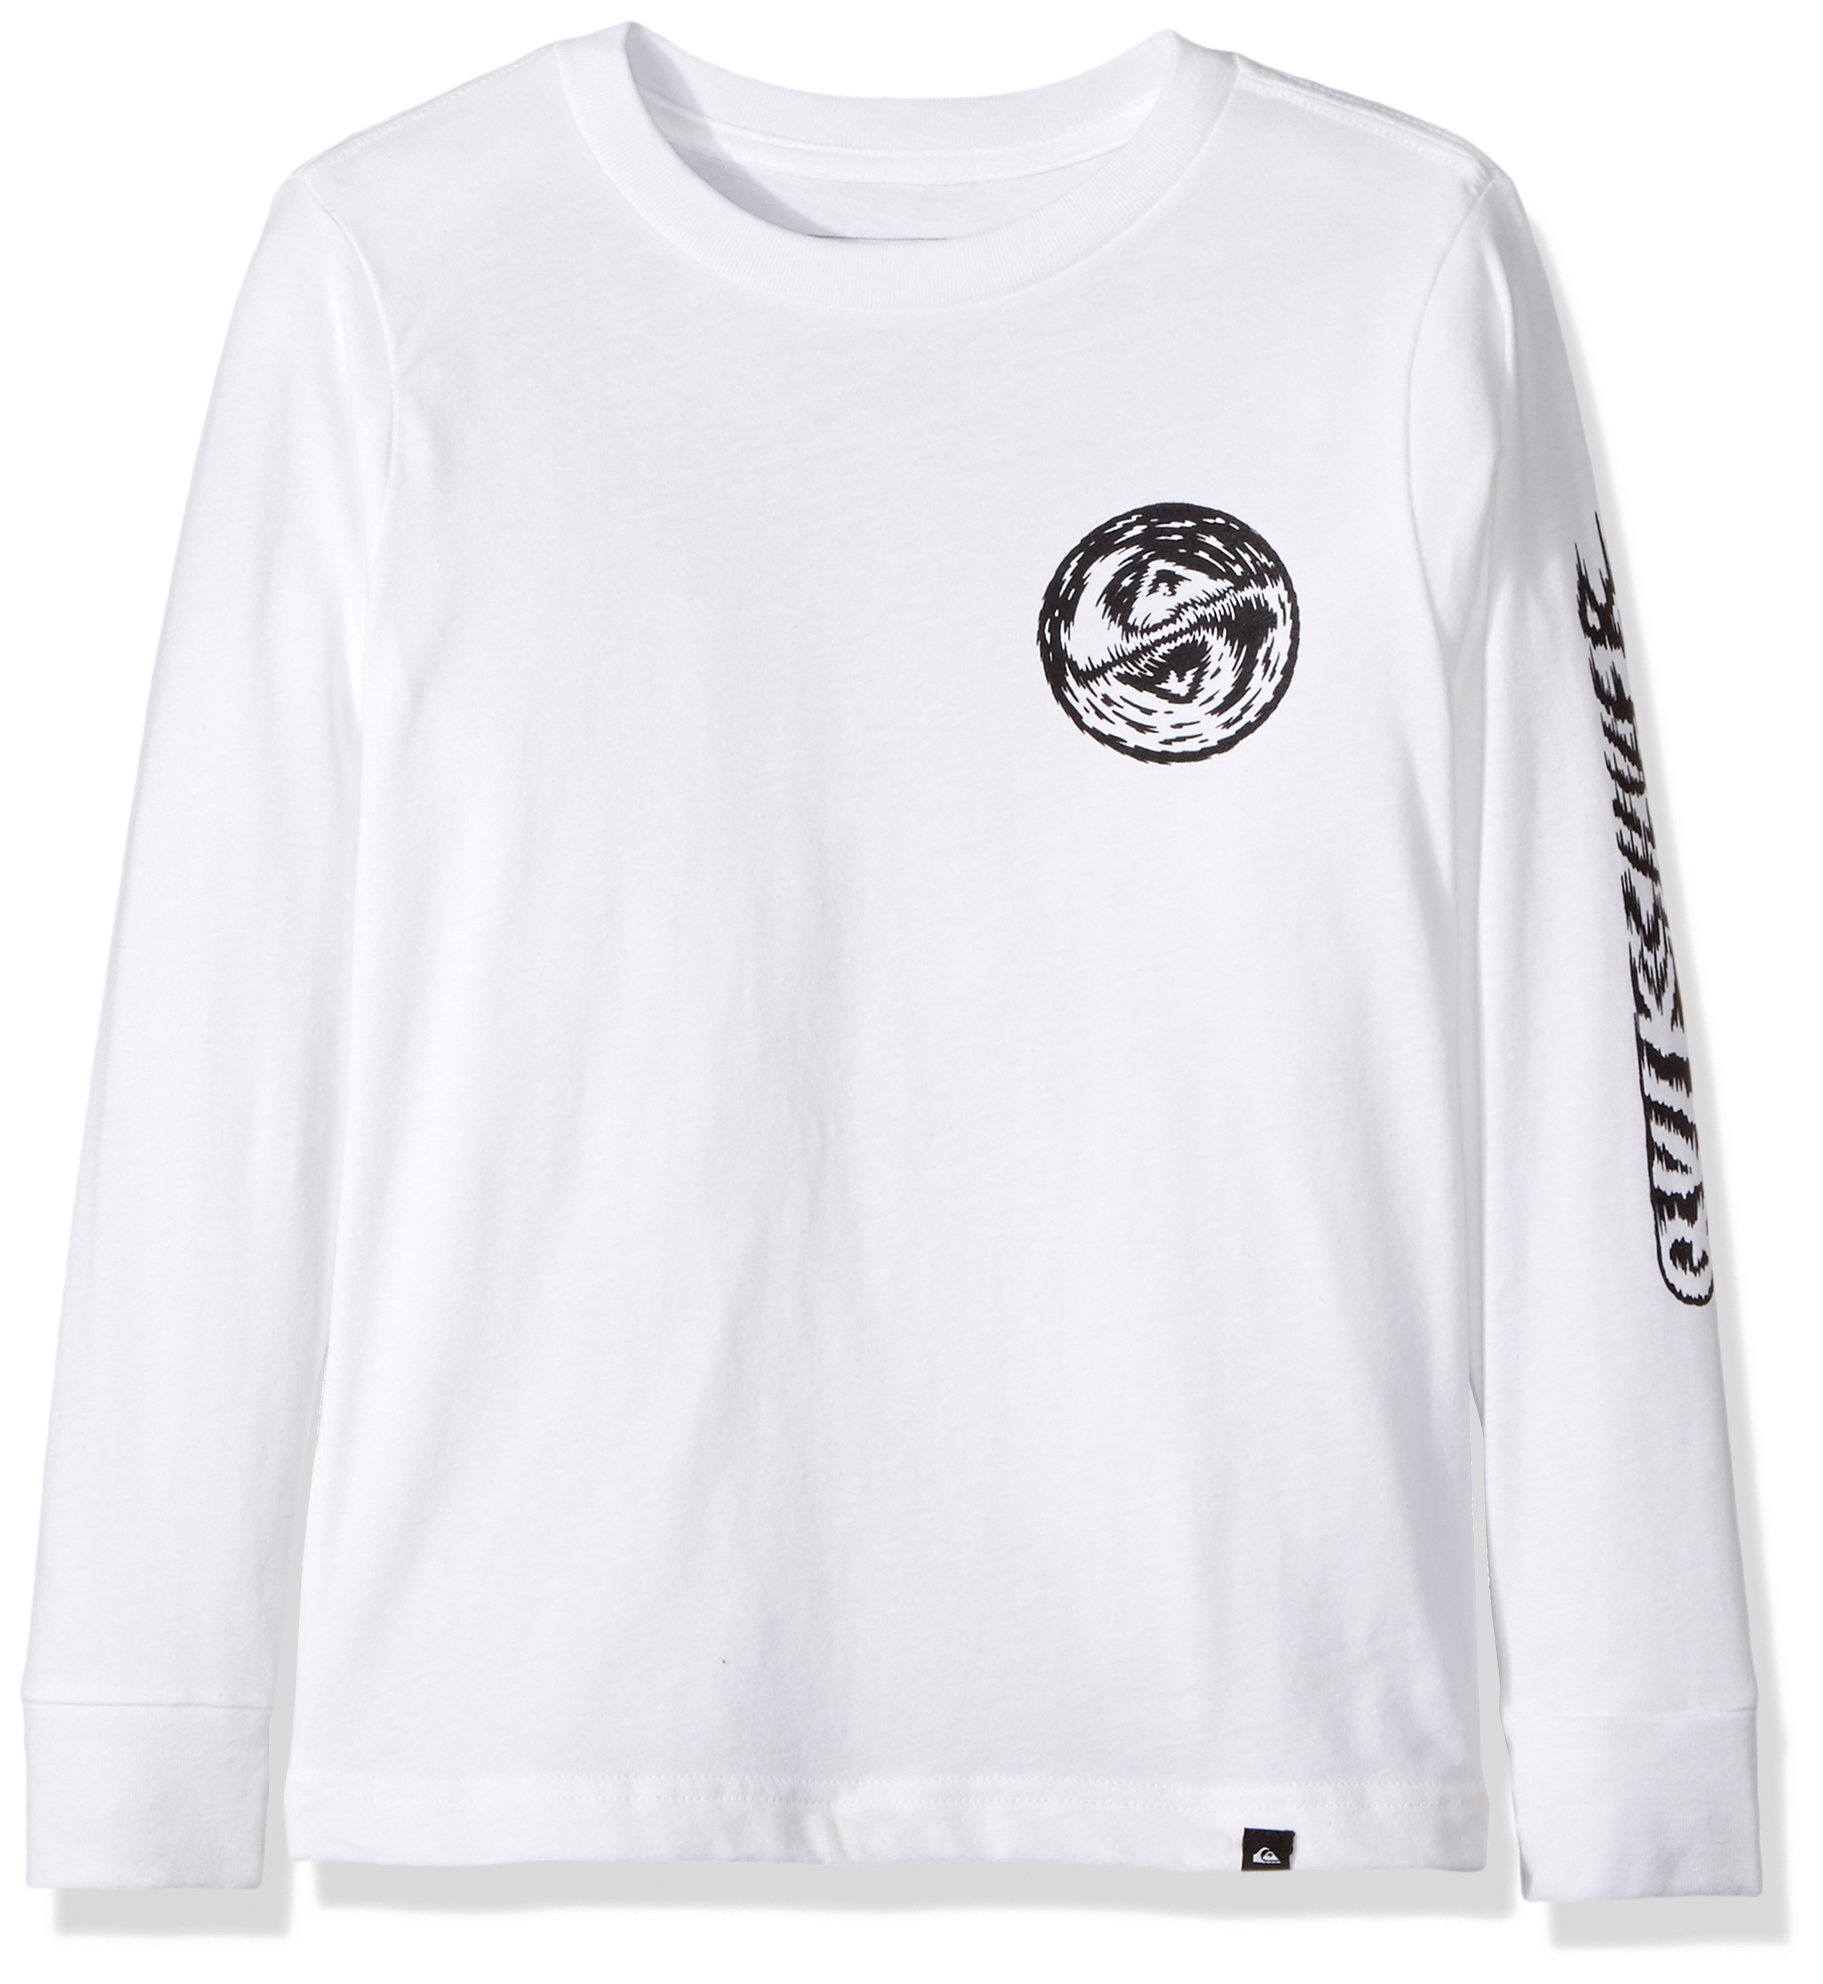 Quiksilver Little Boys' Bad Vision Long Sleeve Tee, White, 6